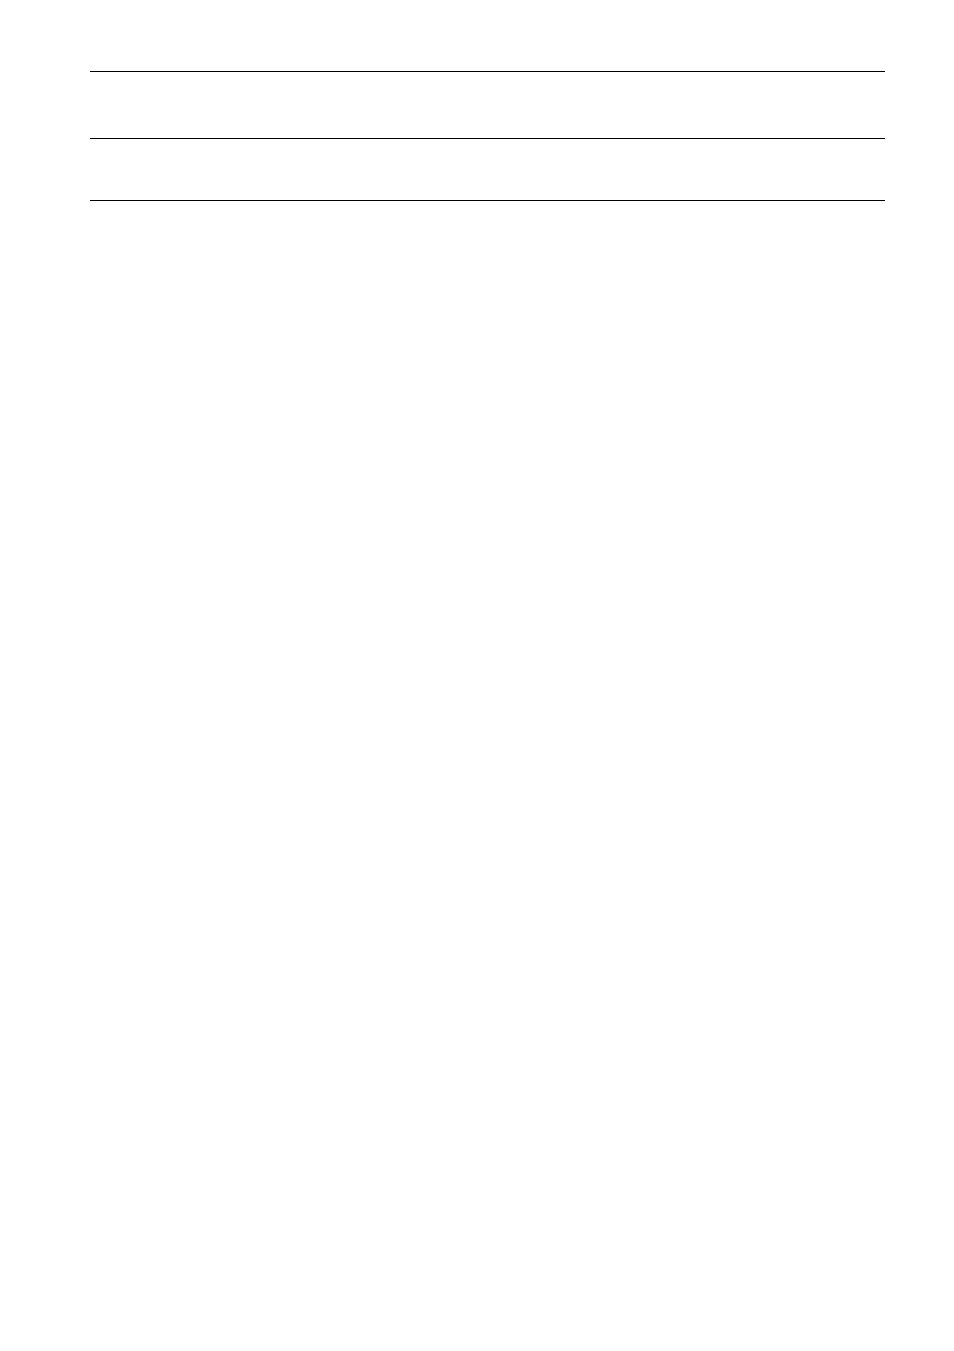 Philips Dp 6000 User Manual Page 9 15 Also For Lbb 5800 Current Pulse Relay